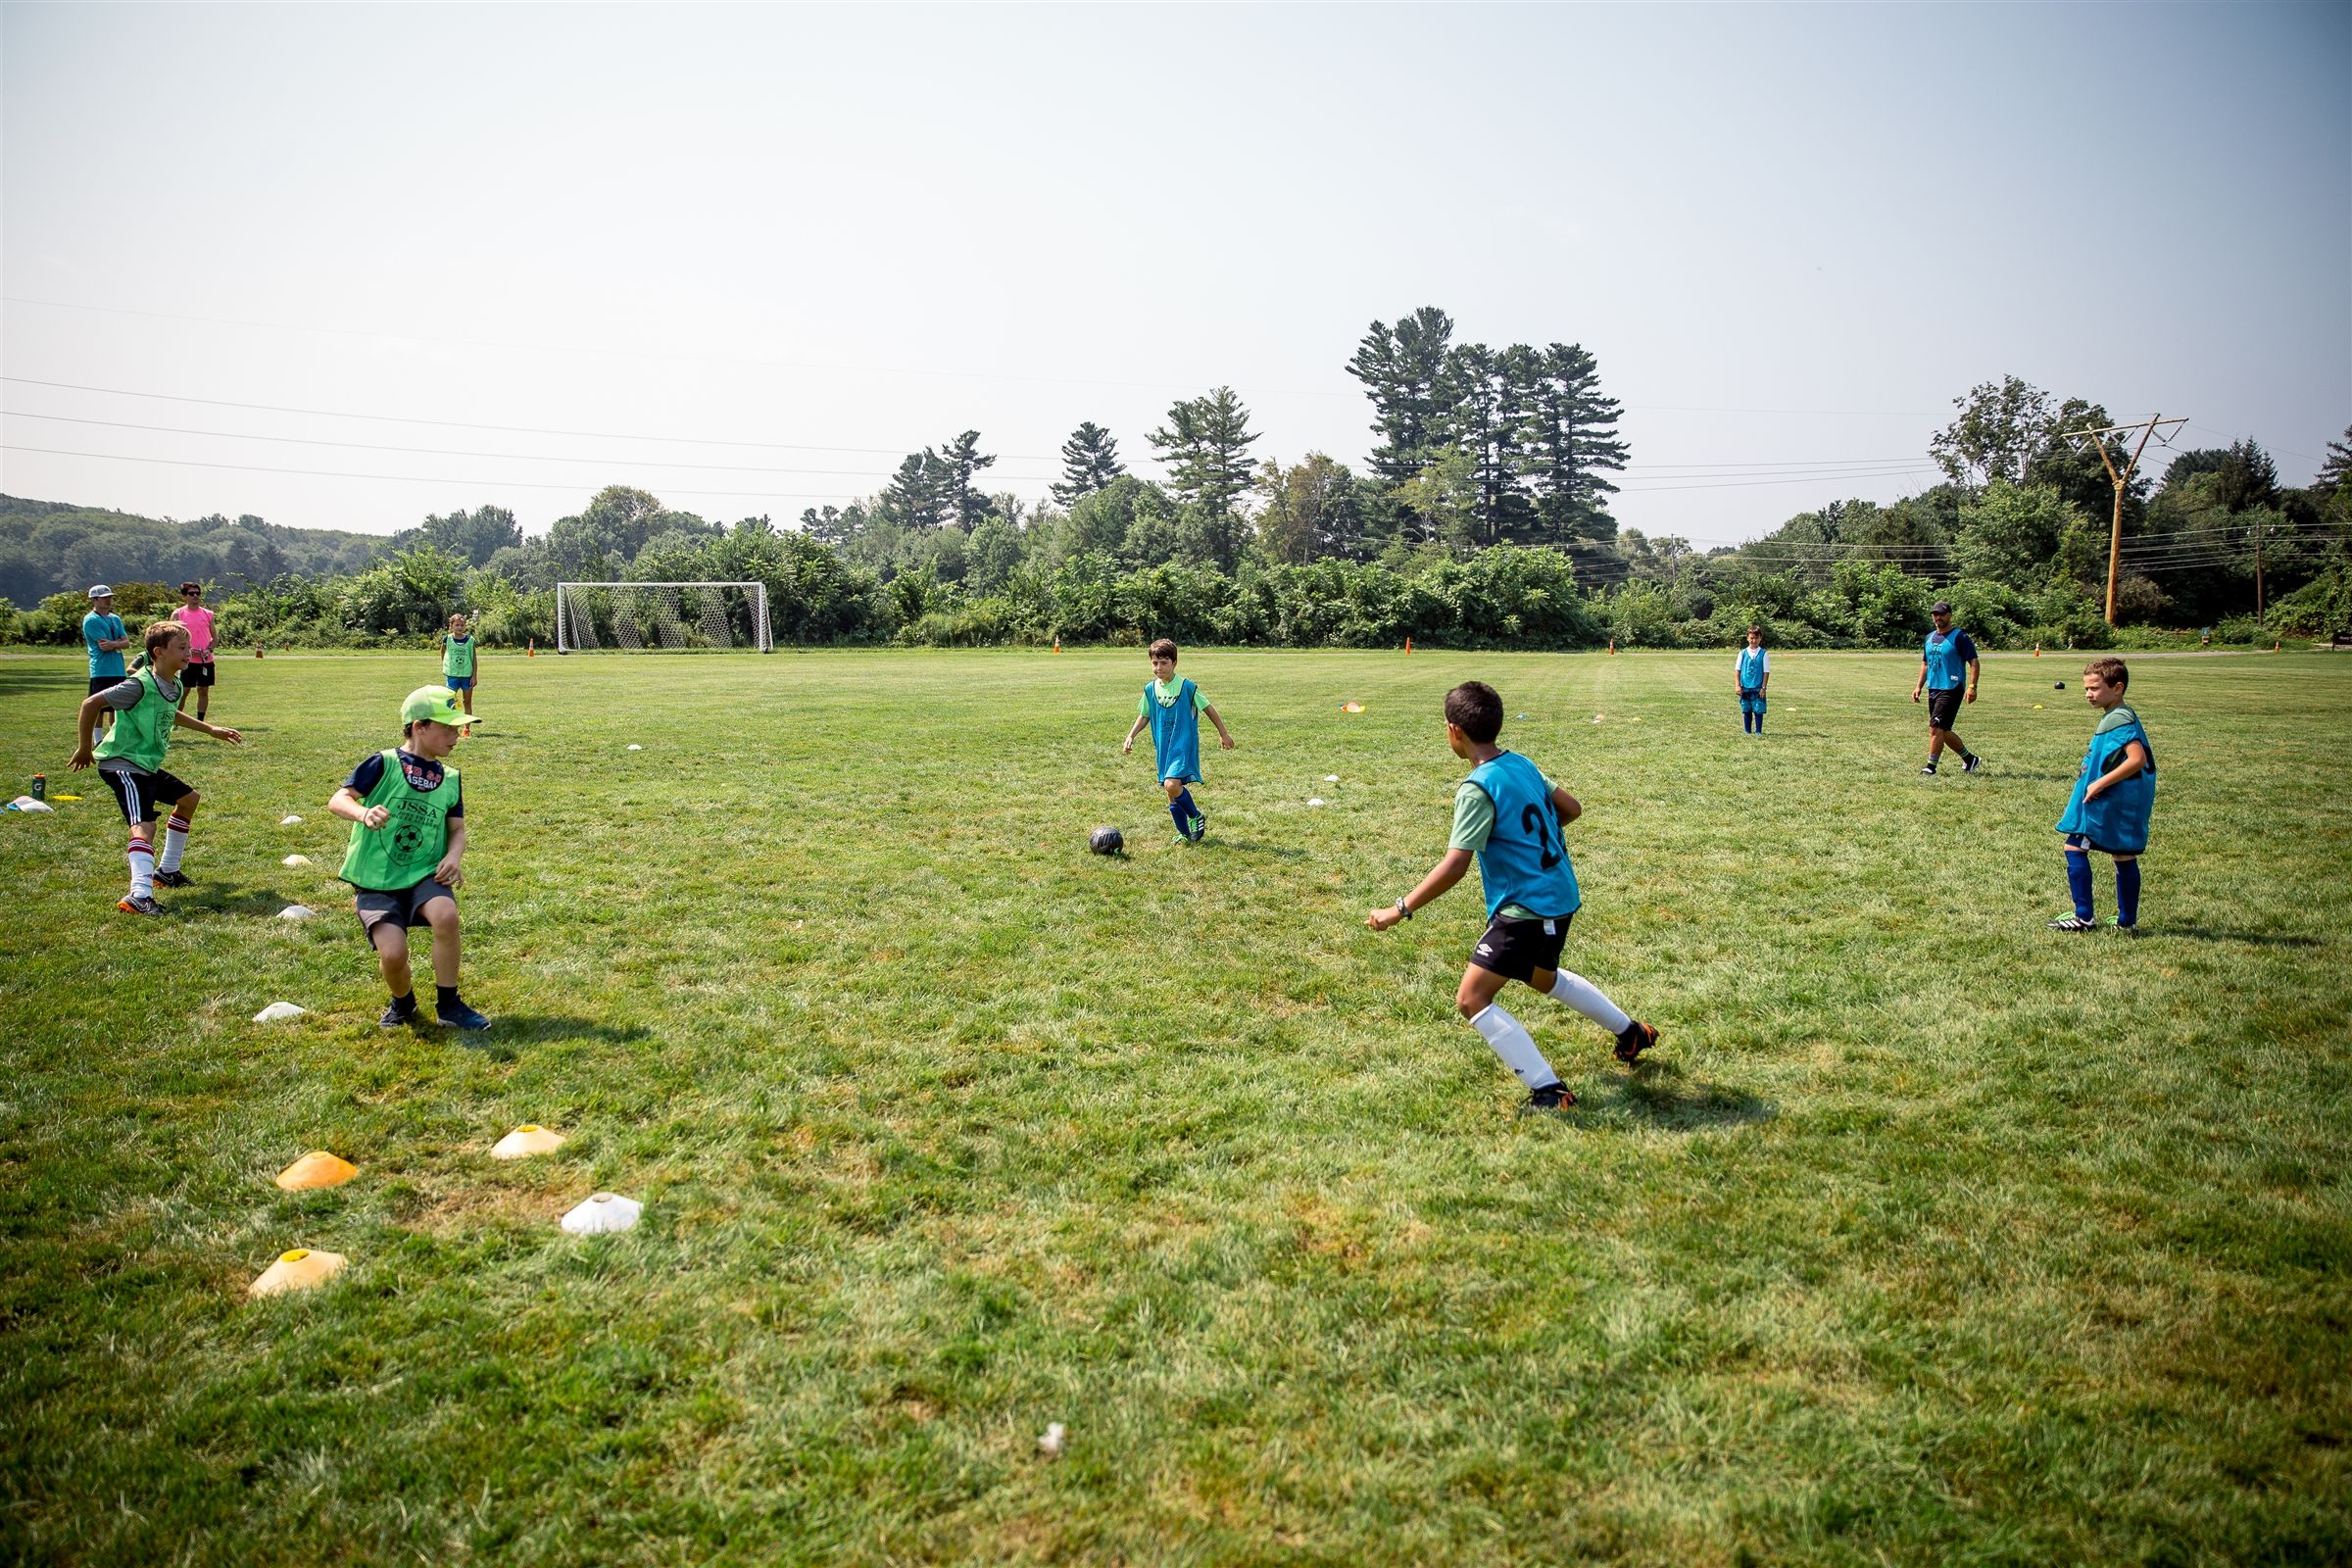 There are five athletic fields on Fay's main campus and campers use them to play soccer and other games.